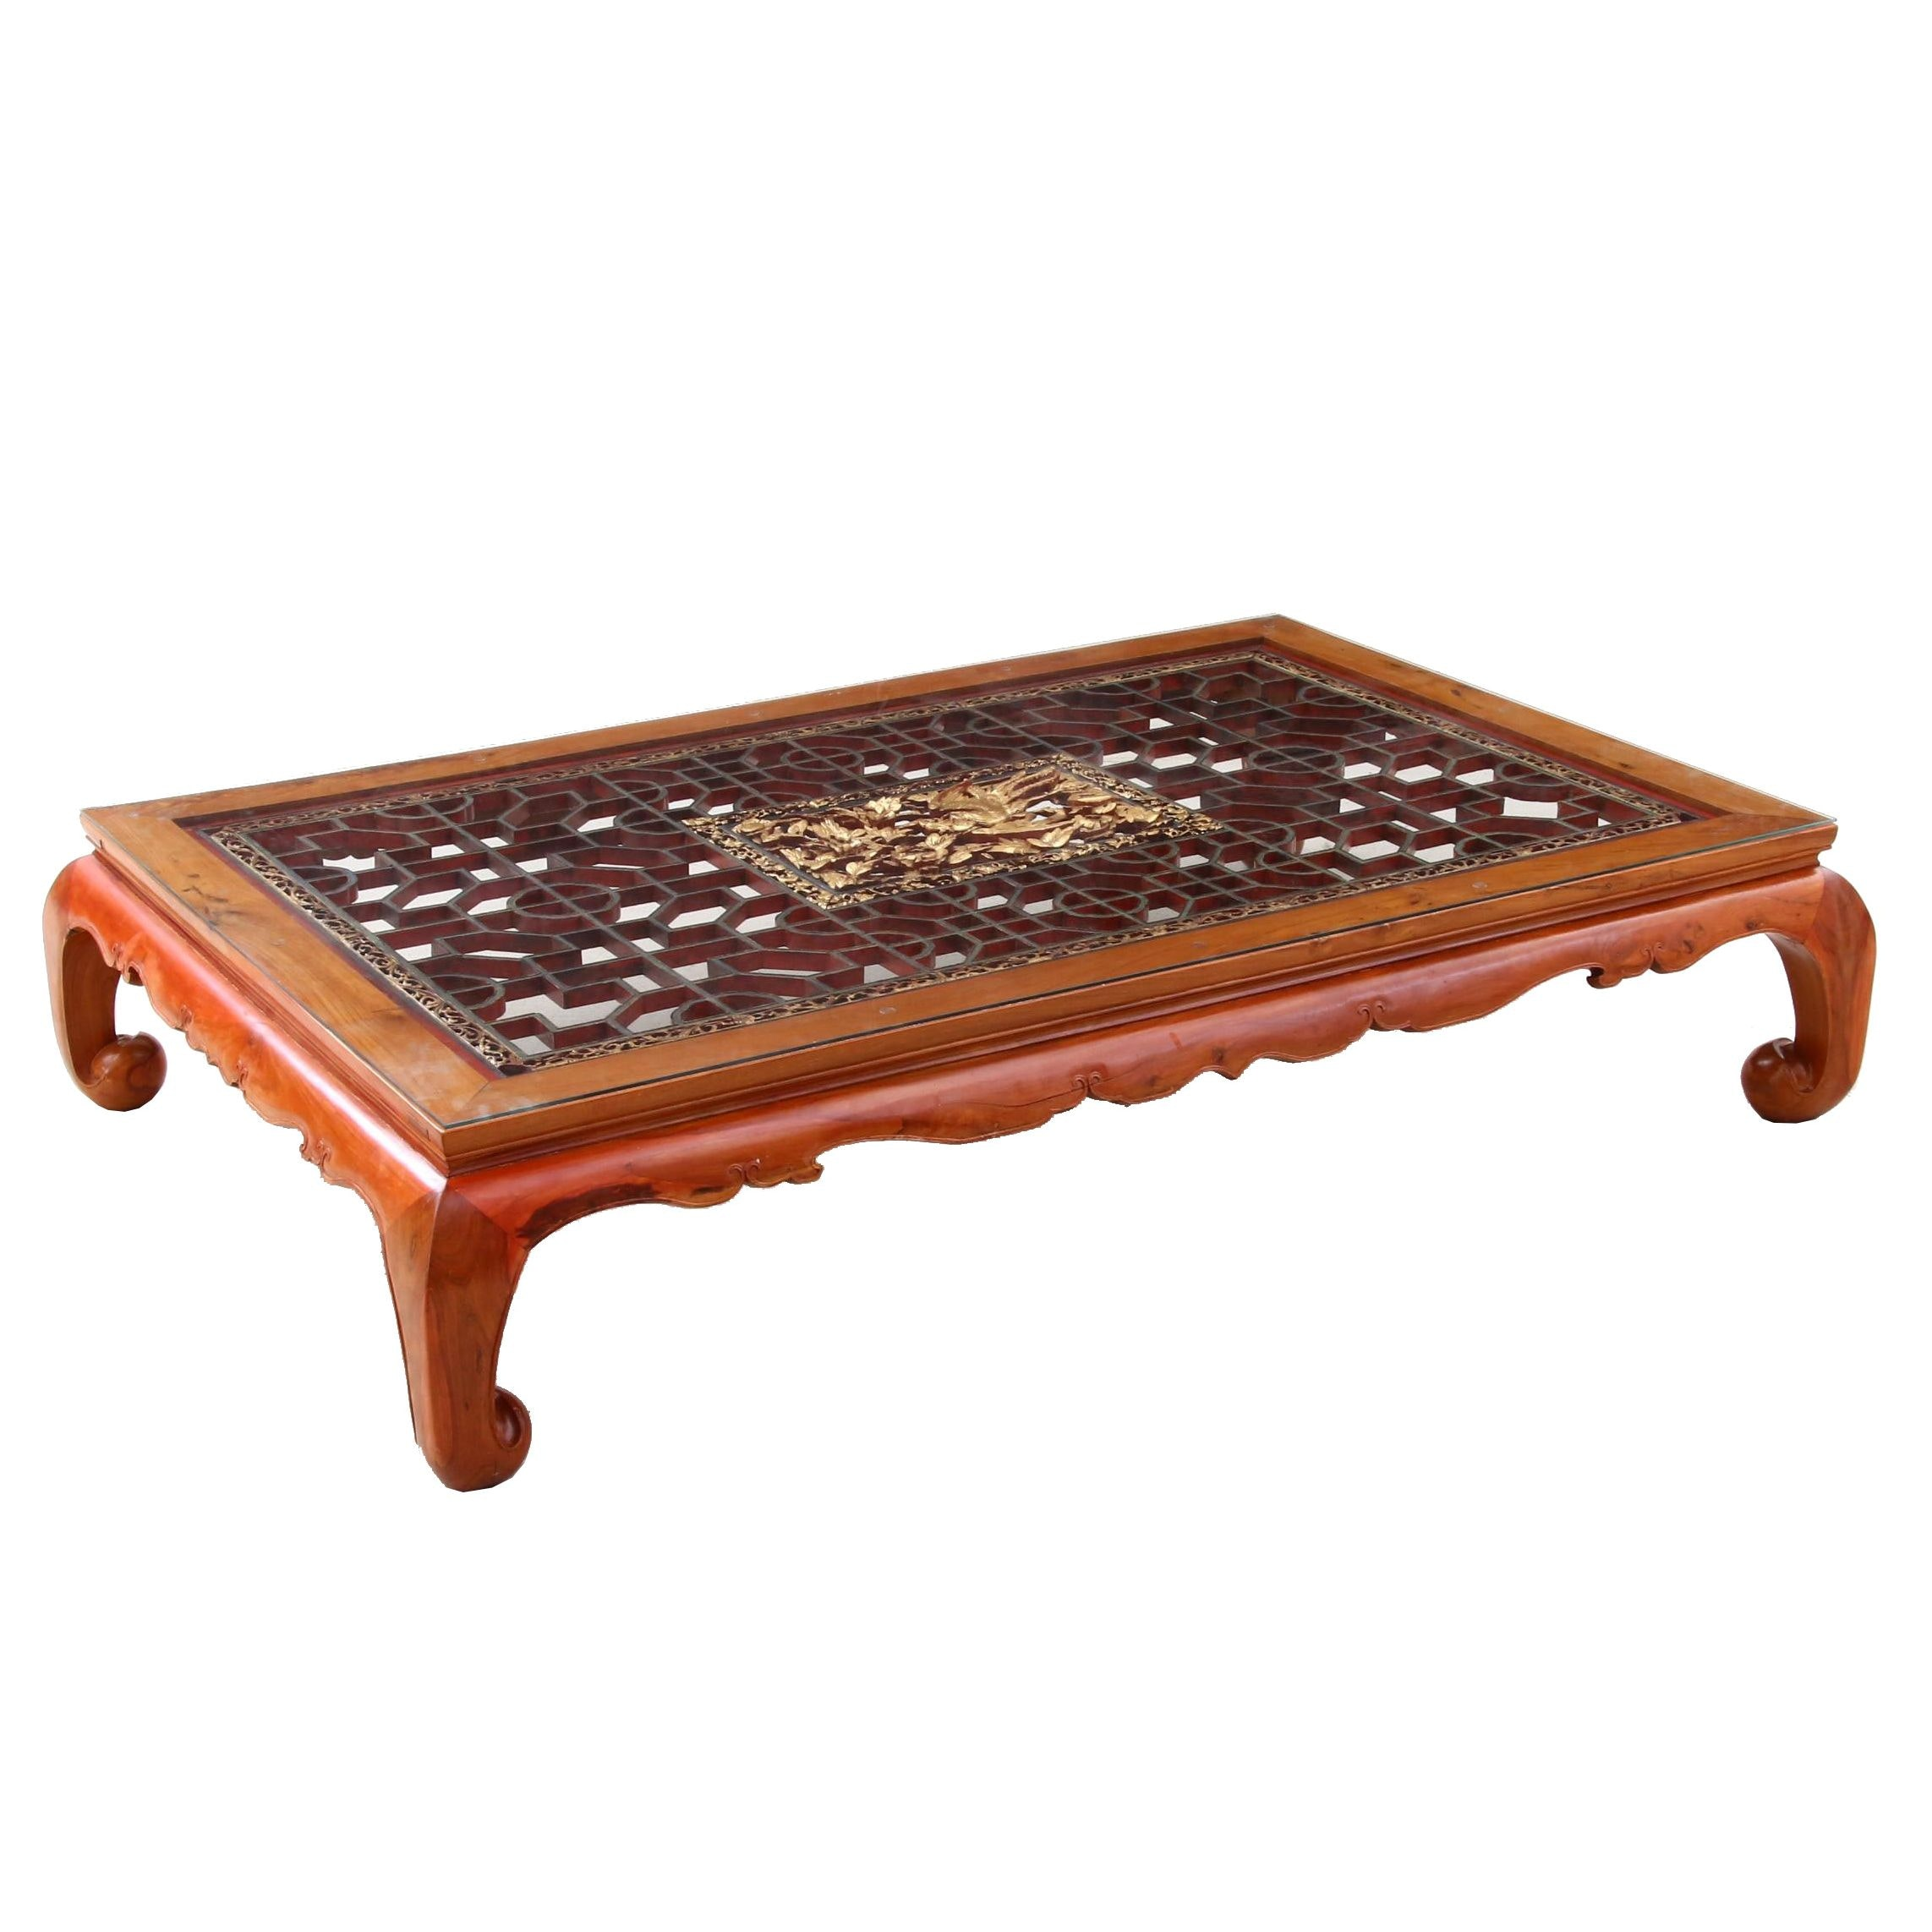 Large Custom Chinese Rosewood Coffee Table With Fretwork Panel, Mid 20th  Century | EBTH